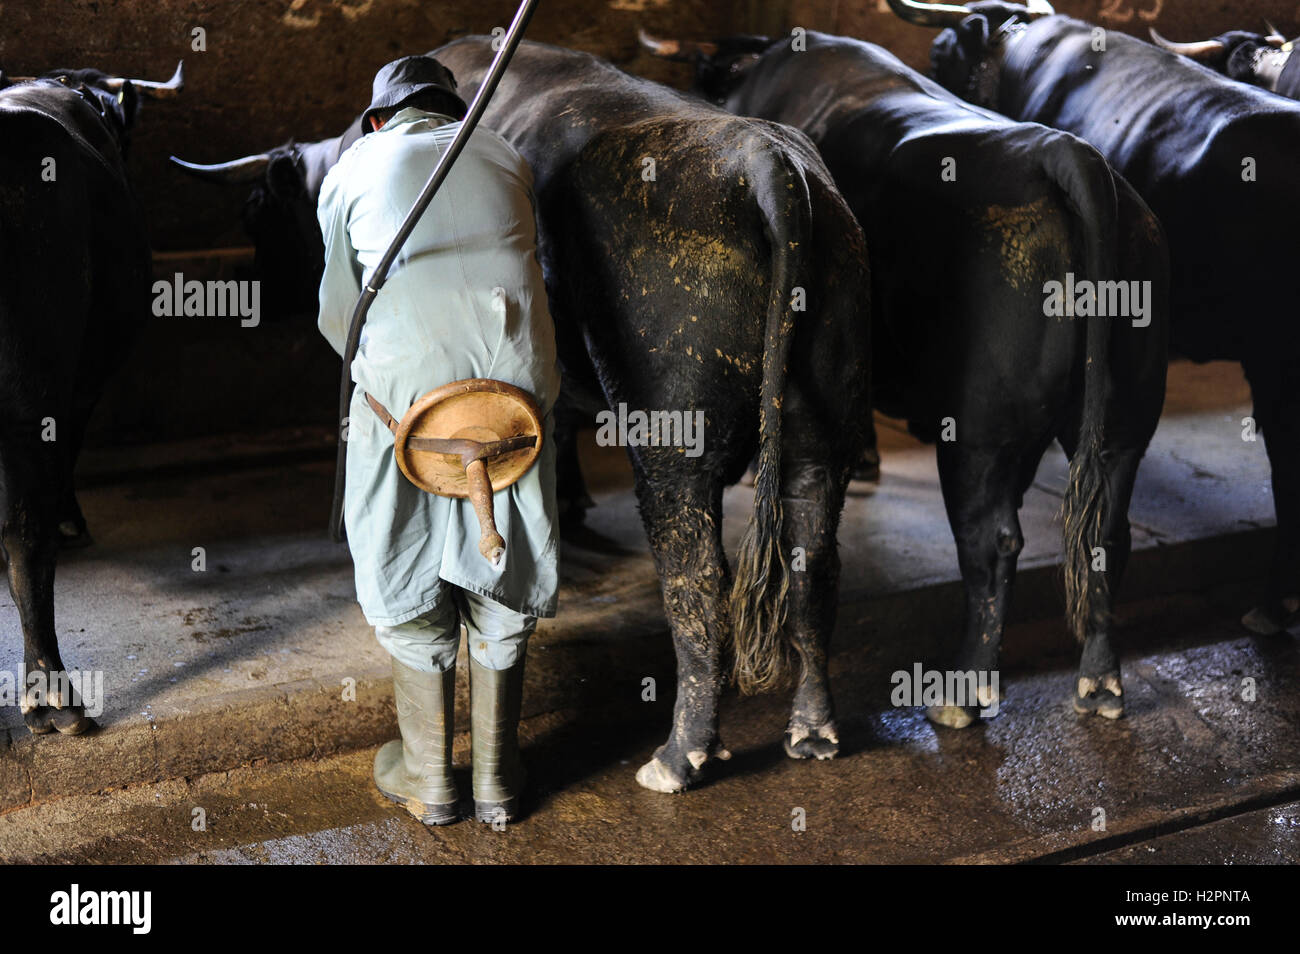 SWITZERLAND Kanton Wallis agriculture in the mountains, Erringer cows in milking stable of Philippe Frossard, the - Stock Image